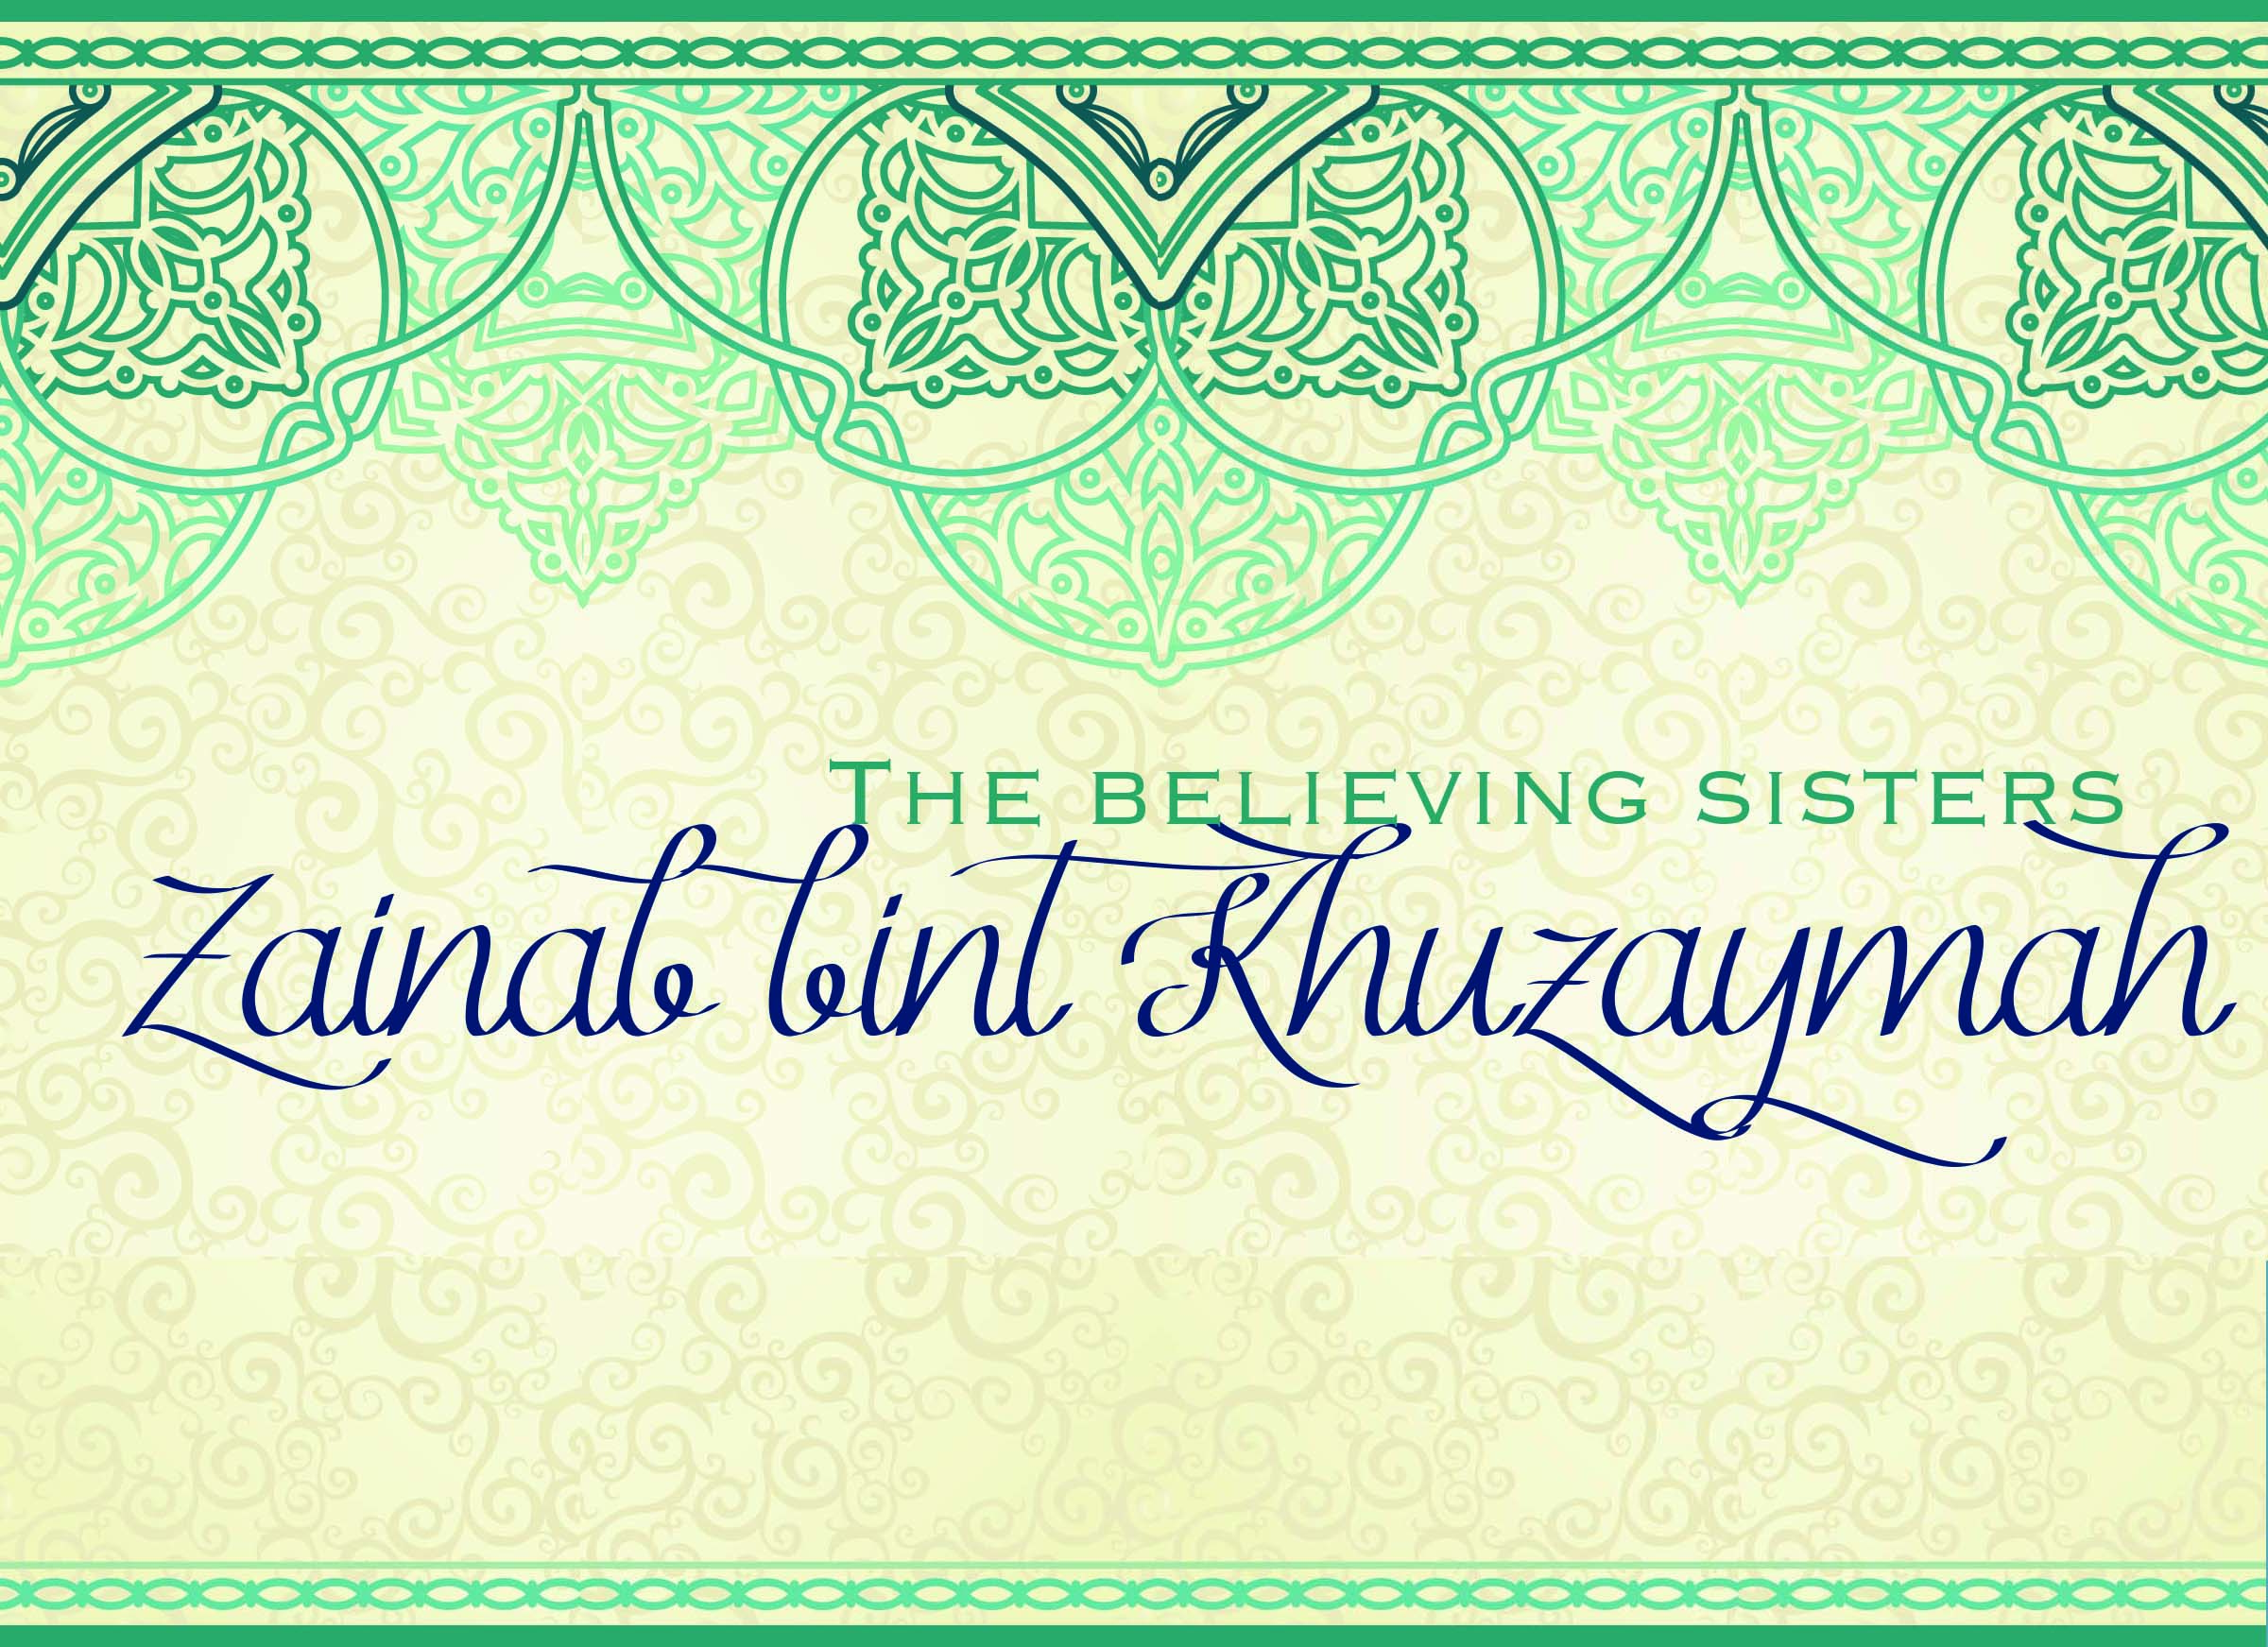 [8 Ramadan 1433] The Believing Sisters-Part 4: Zainab bint Khuzaymah